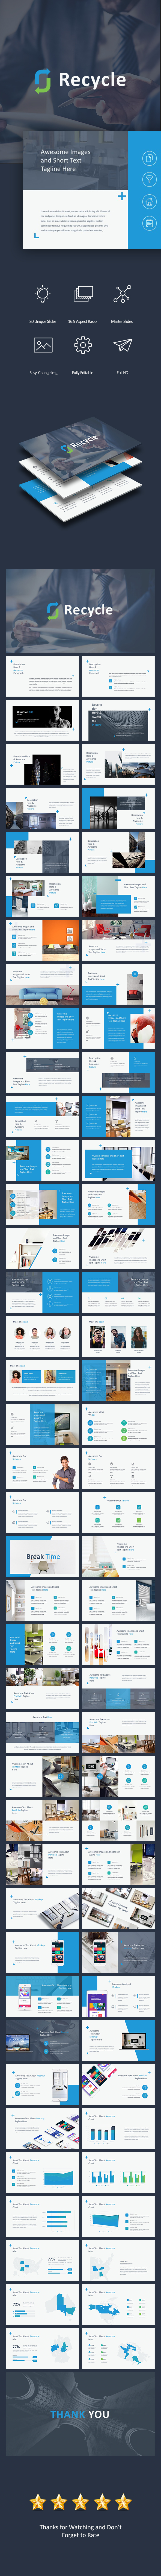 GraphicRiver Recycle Pitch Deck Google Slides 20956165